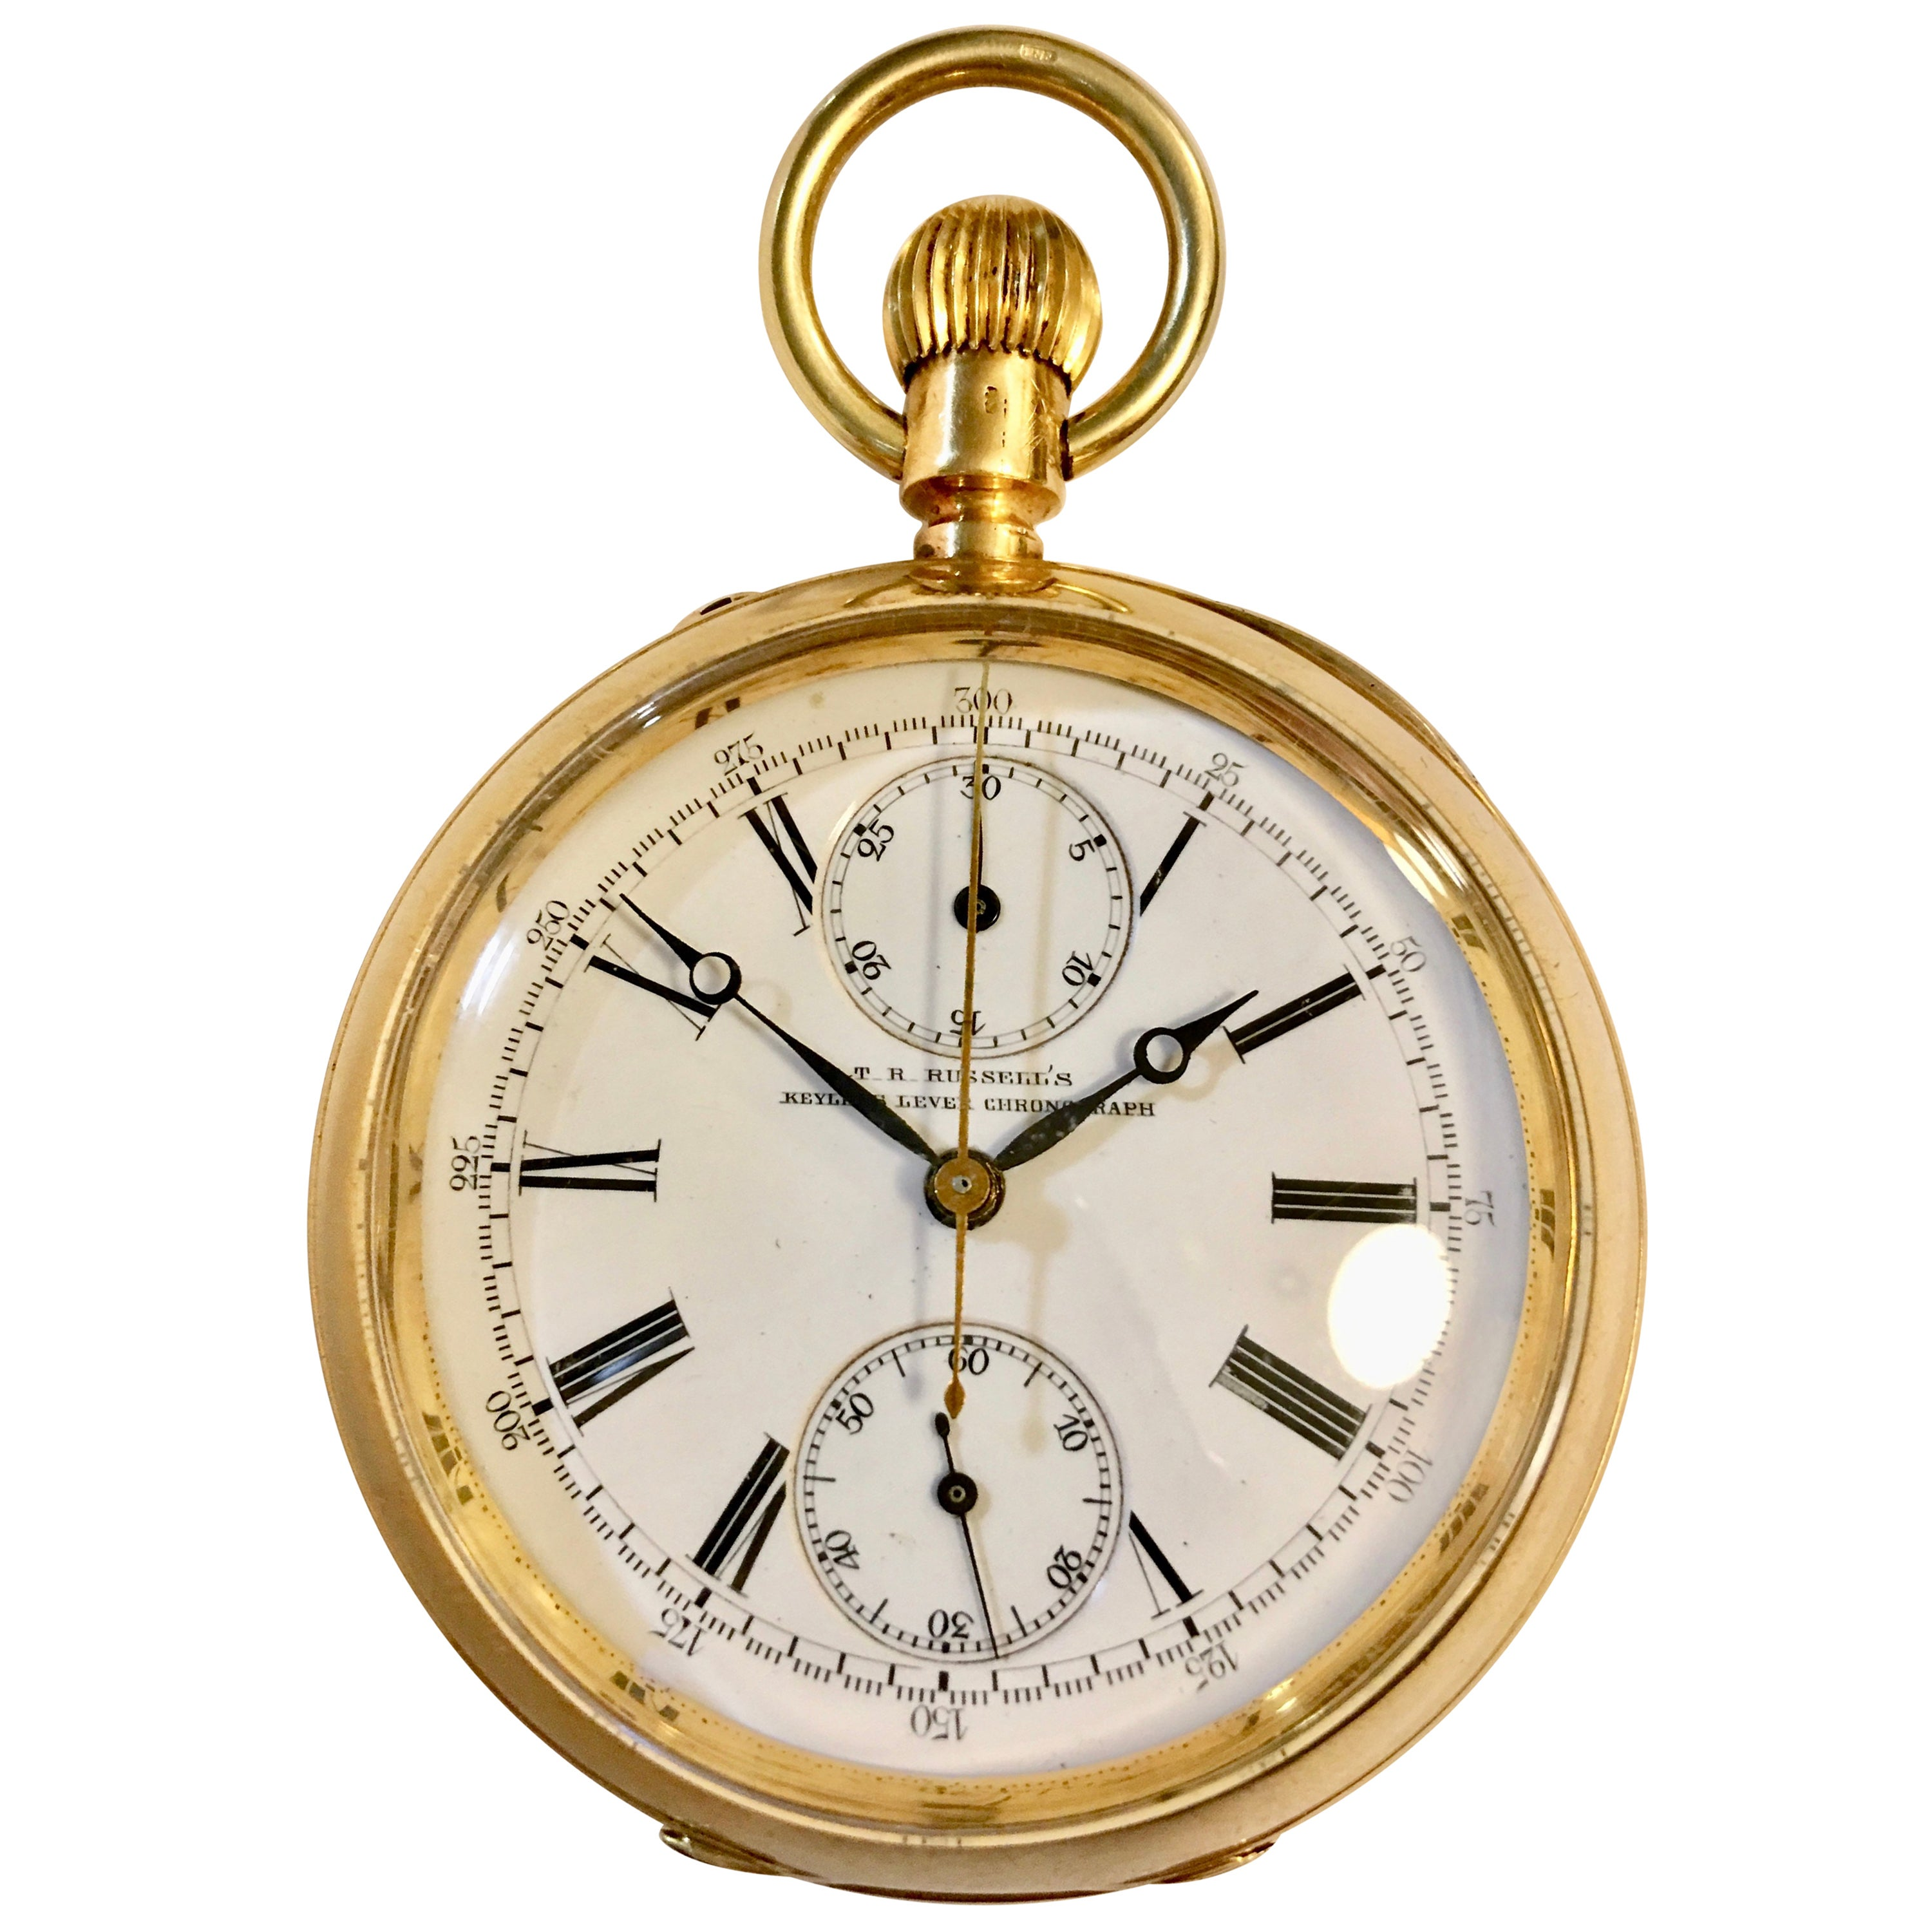 ec74b3061 T.R Russel's Swiss Split Second 18 Karat Gold Chronograph Pocket Watch For  Sale at 1stdibs